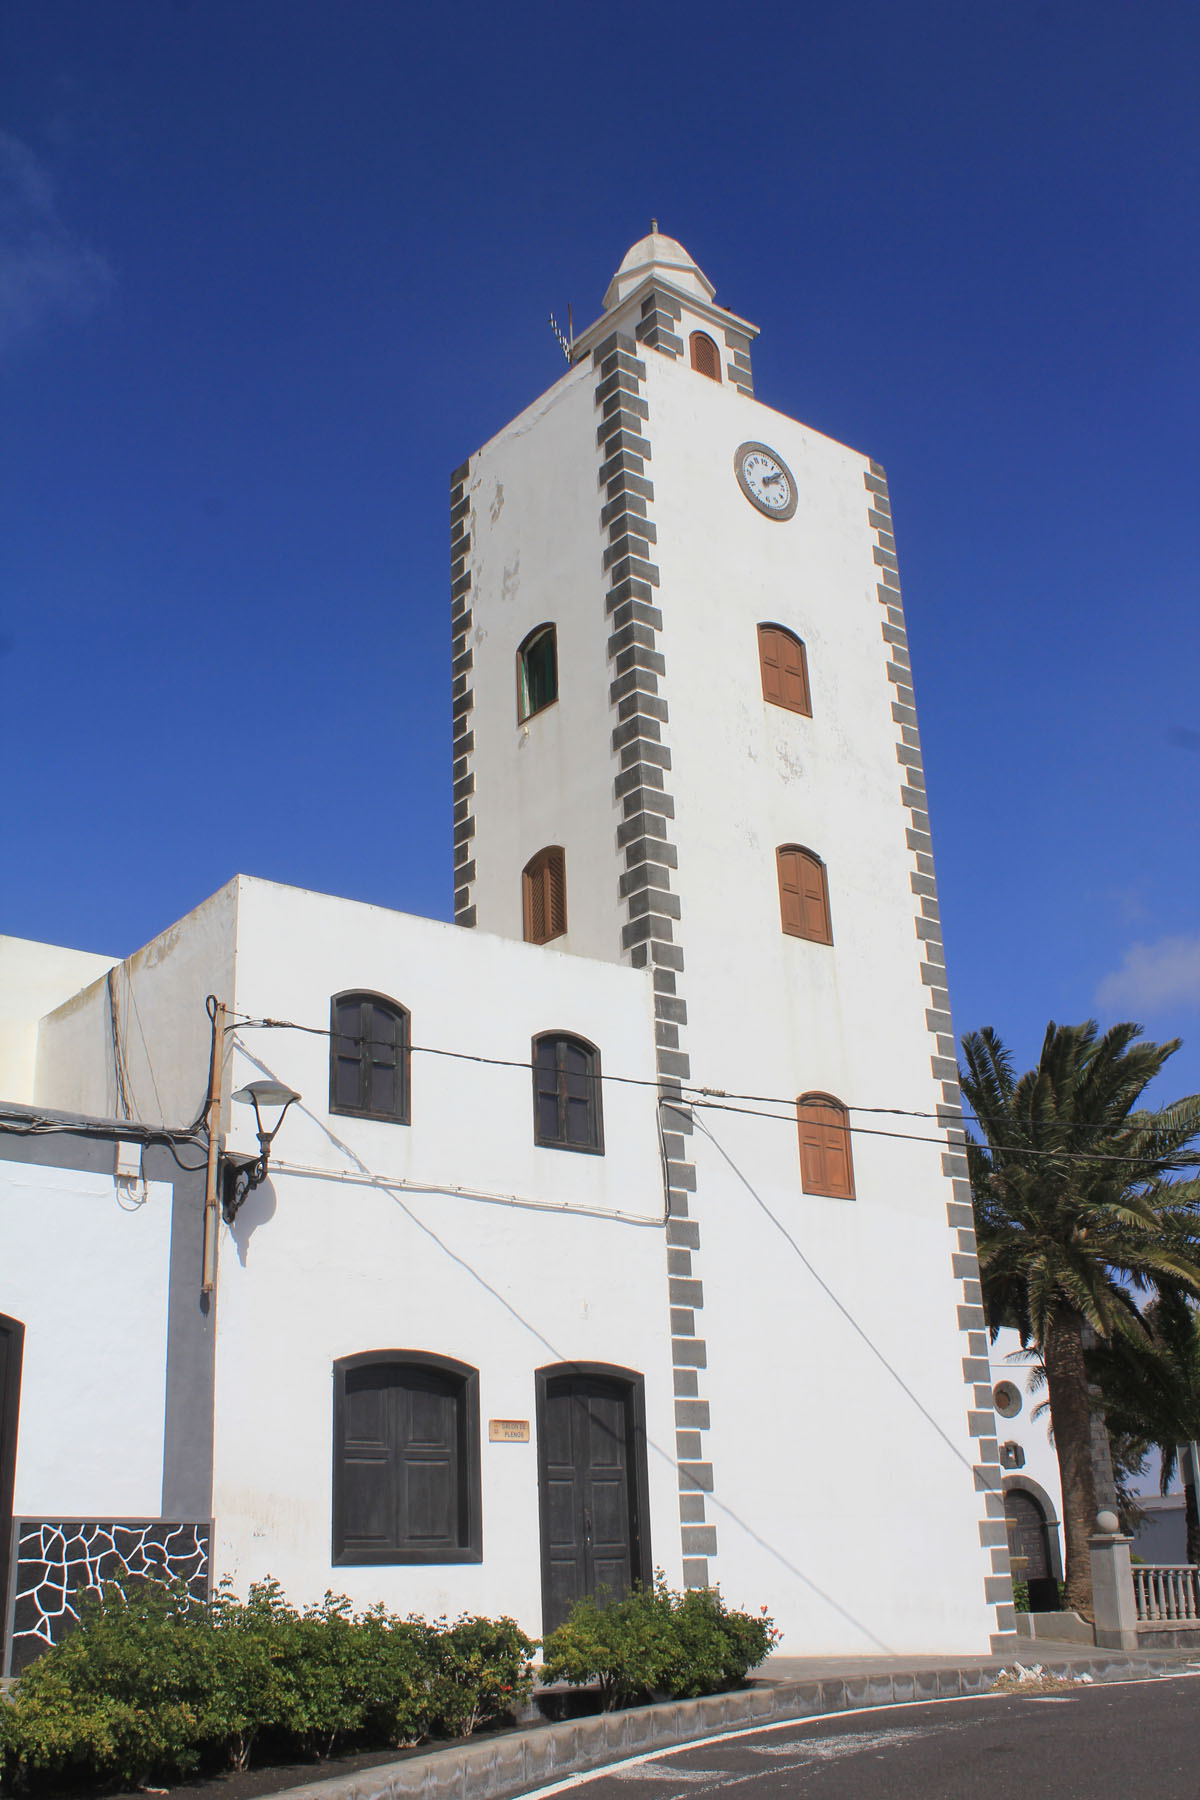 Lanzarote, San Bartolome, church